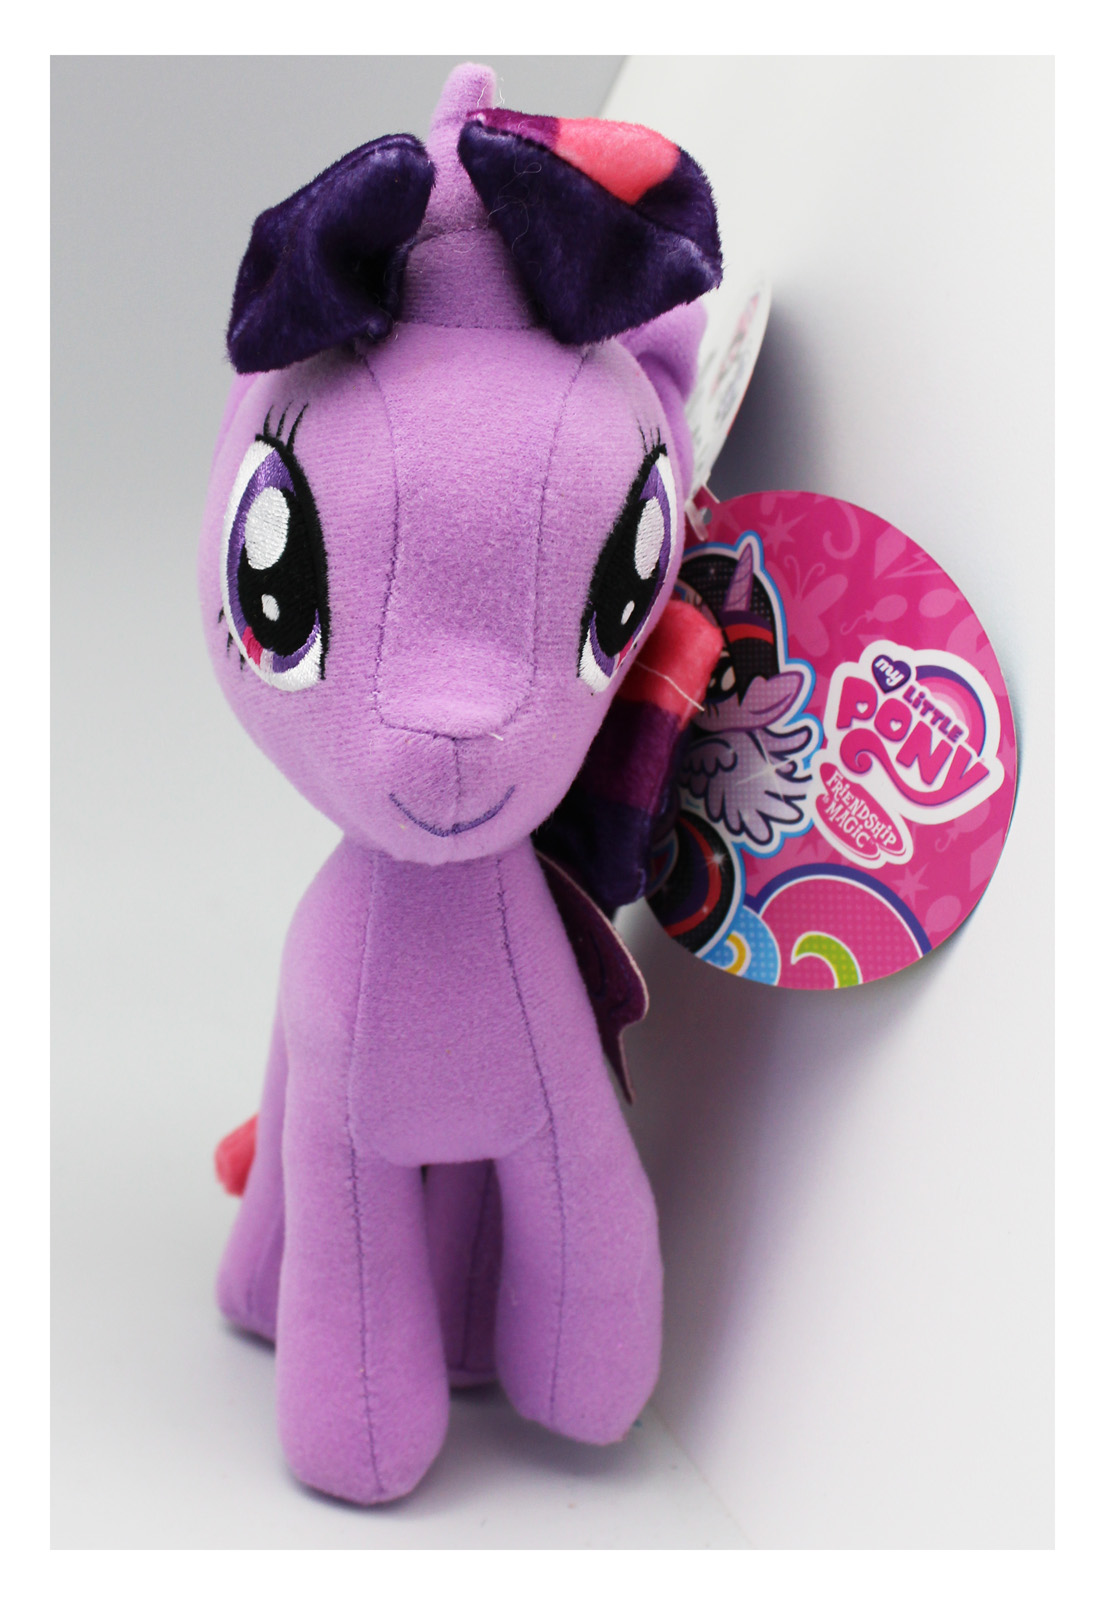 My Little Pony Friendship is Magic Twighlight Sparkle Plush Toy (8in) by